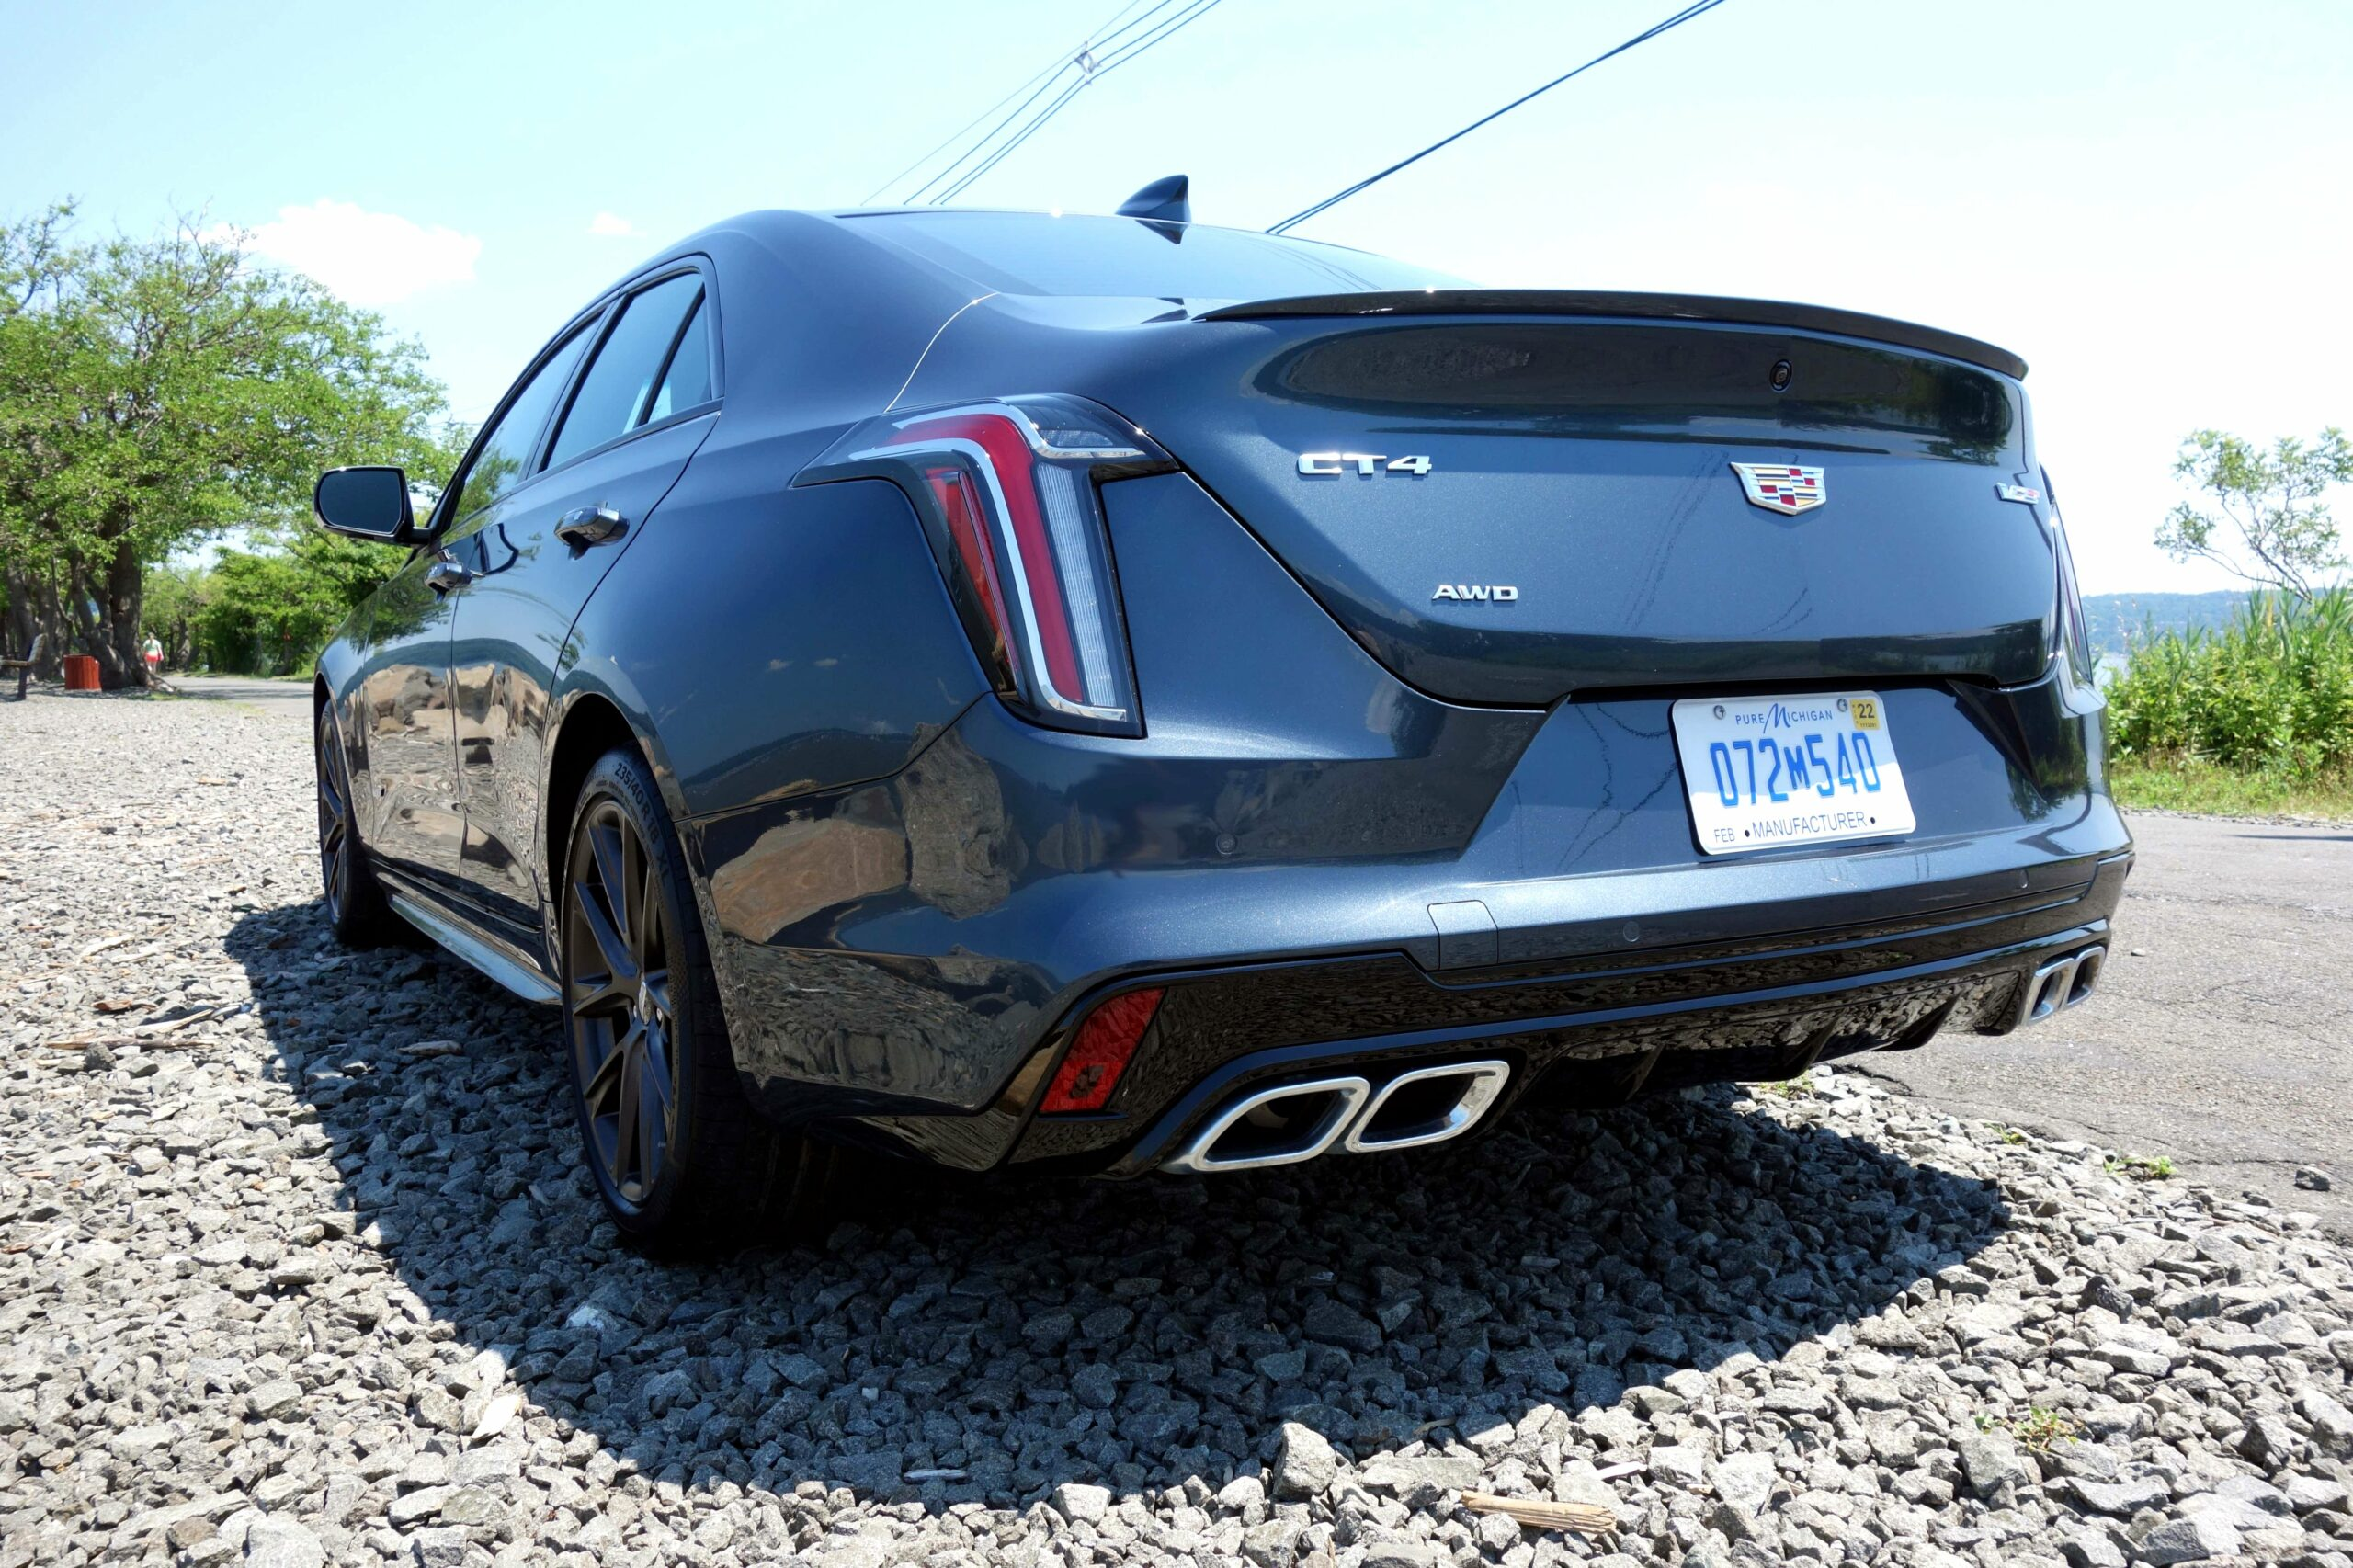 cadillac rv show 2020 Pictures